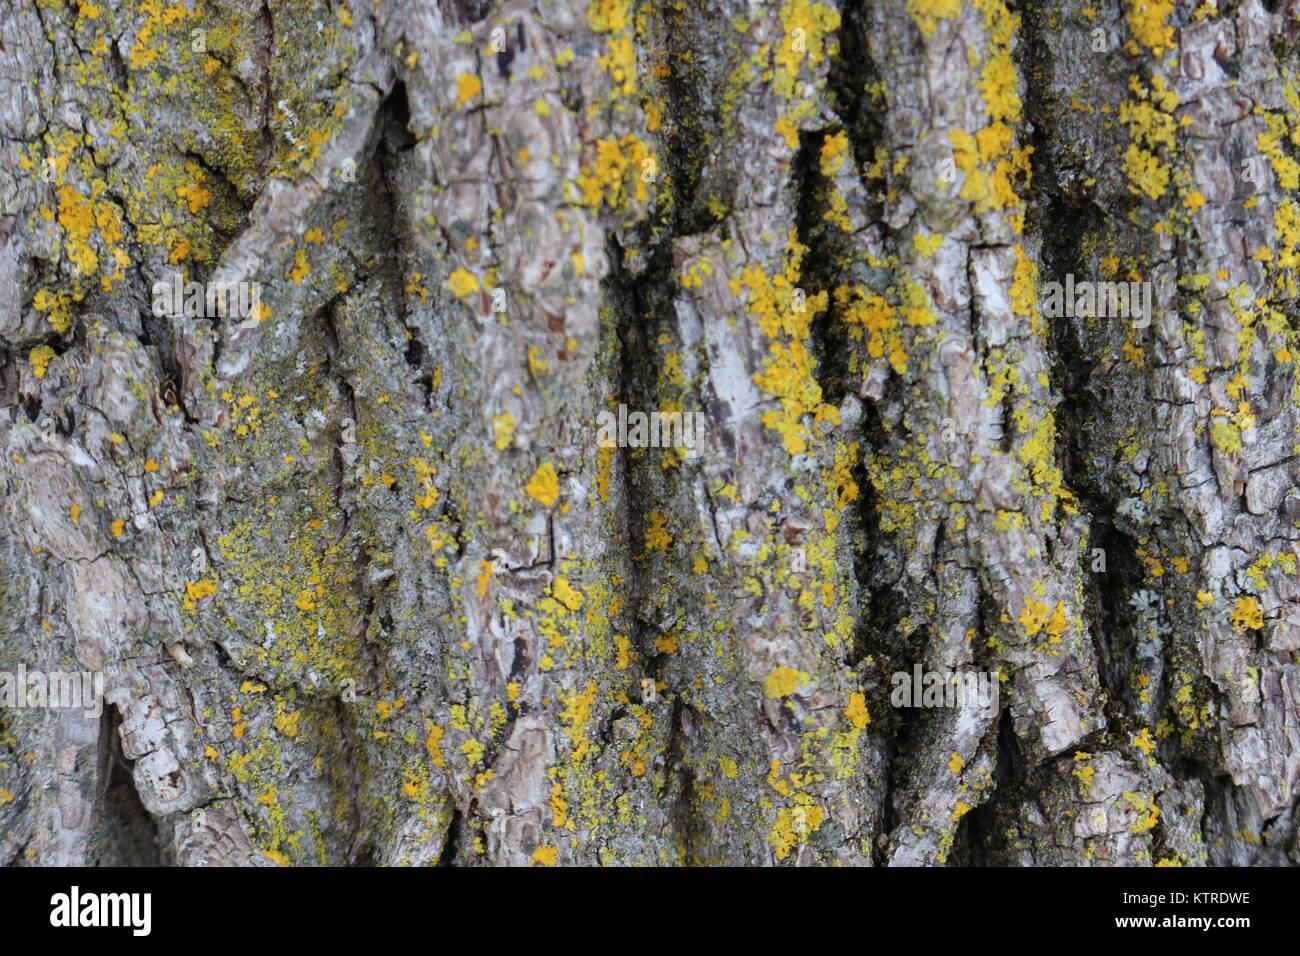 cool abstract bark background with some yellow fungus on it - Stock Image